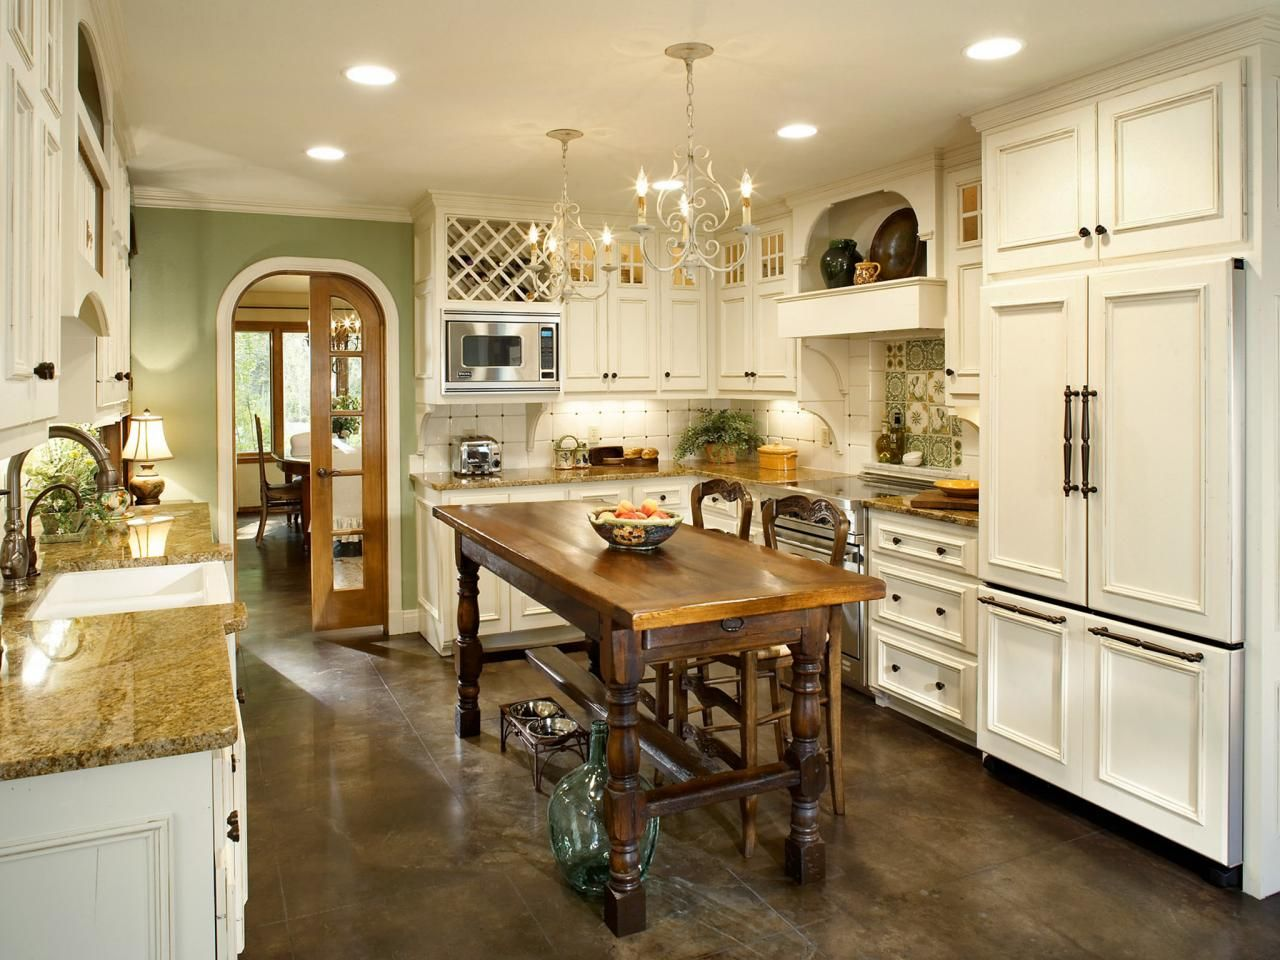 french country kitchen makeover country kitchen cabinets country kitchen country kitchen designs on kitchen interior french country id=39038